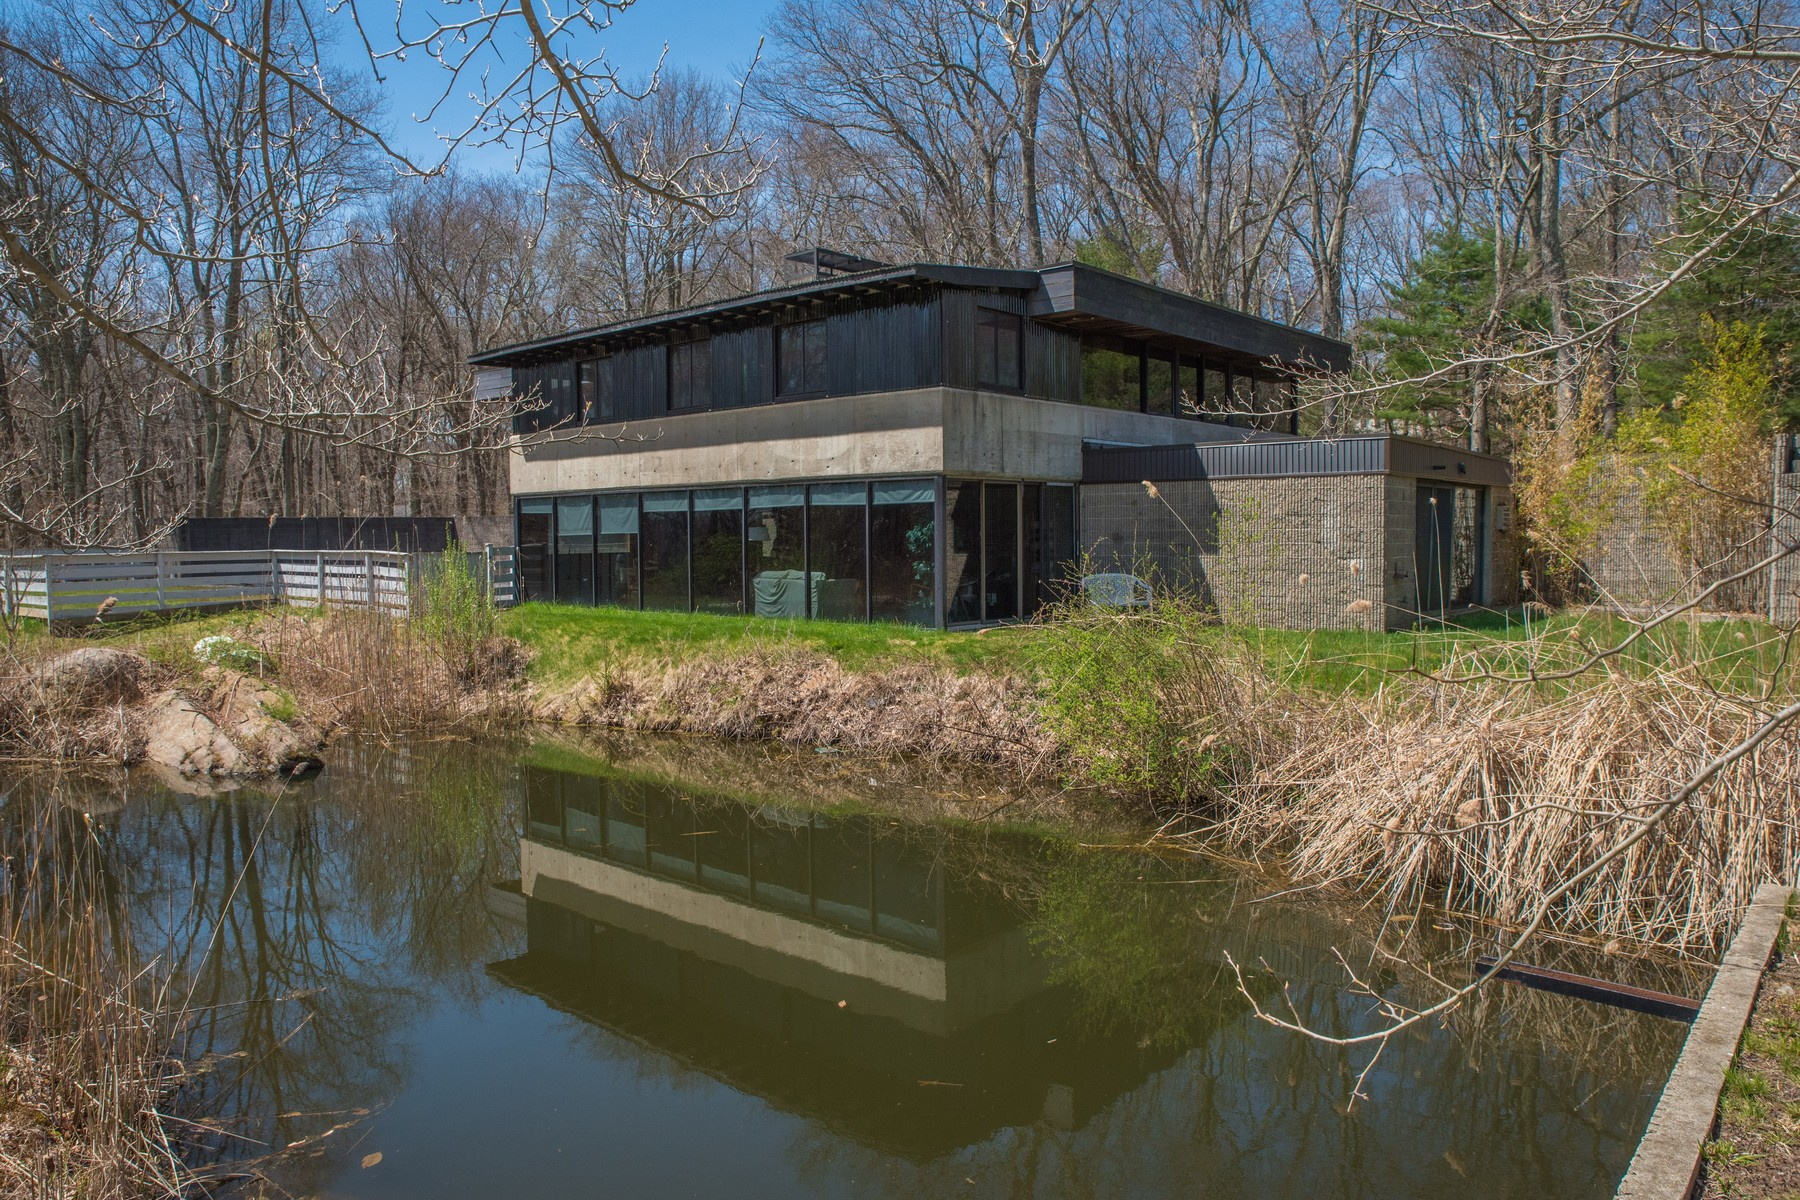 独户住宅 为 销售 在 Unique contemporary listed on the Connecticut Landmark homes list 3 Bill Hill Rd #b 旧莱姆, 康涅狄格州 06371 美国